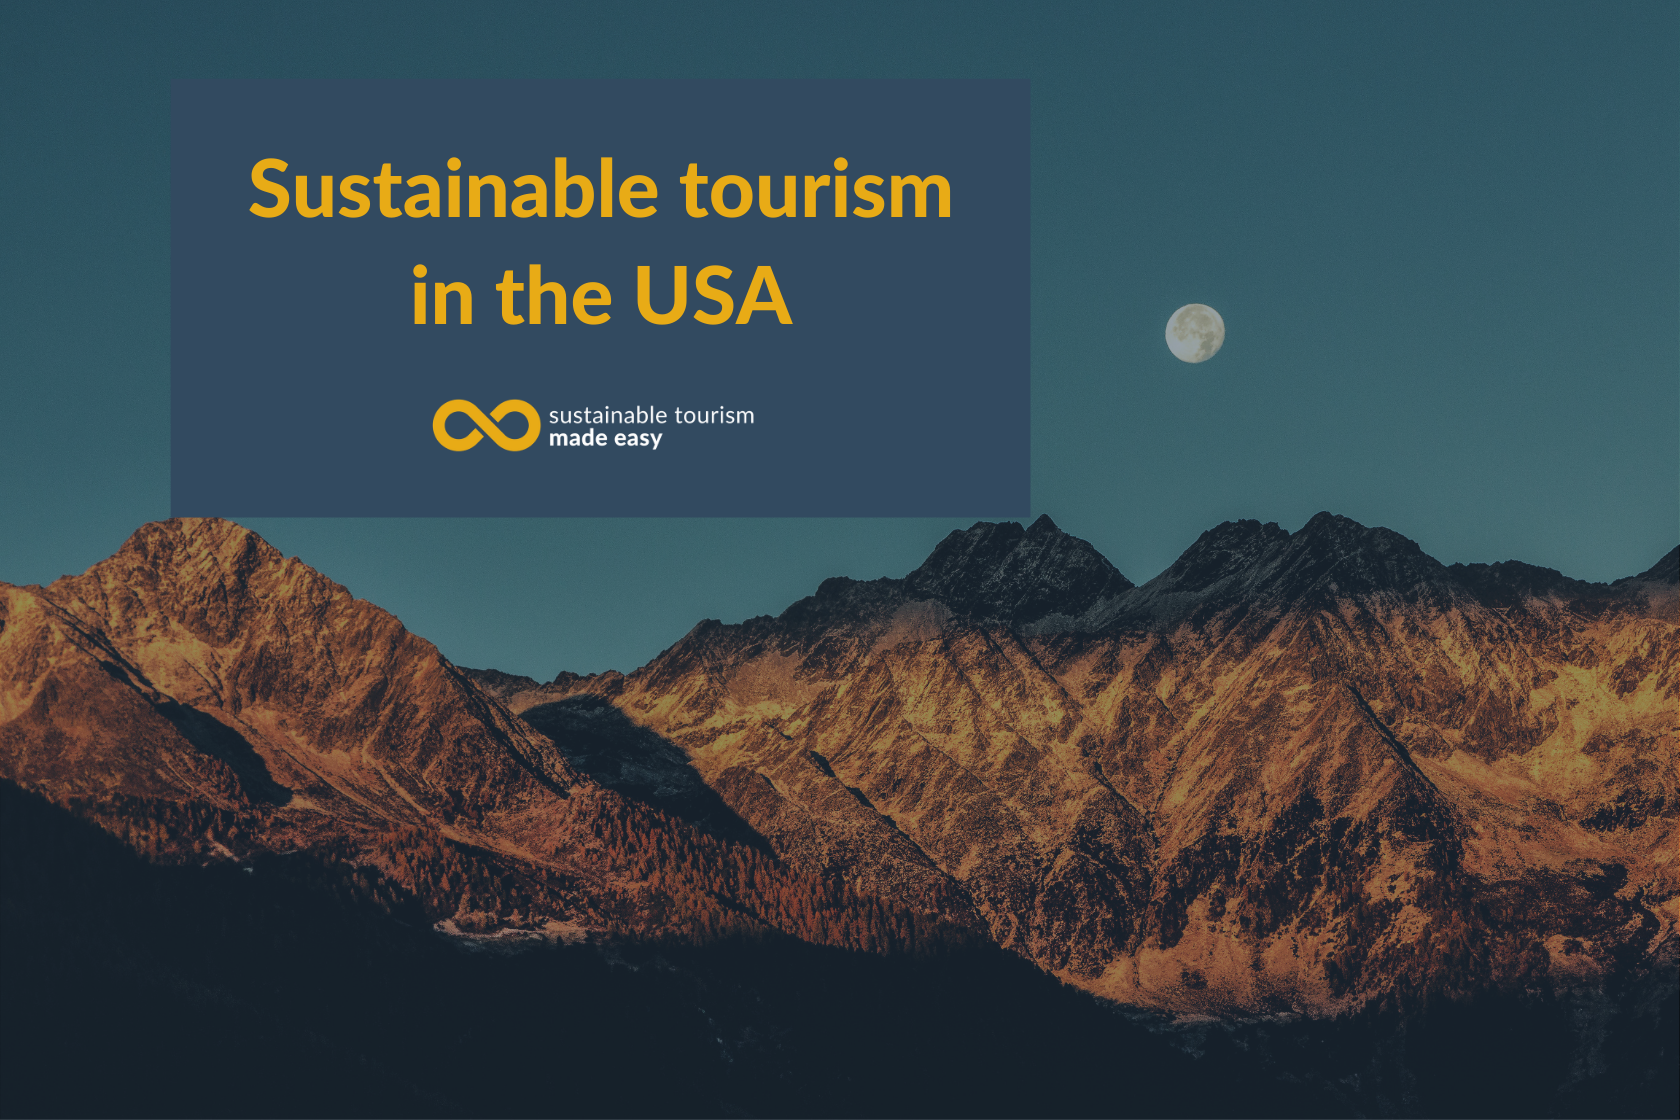 Sustainable tourism in the USA